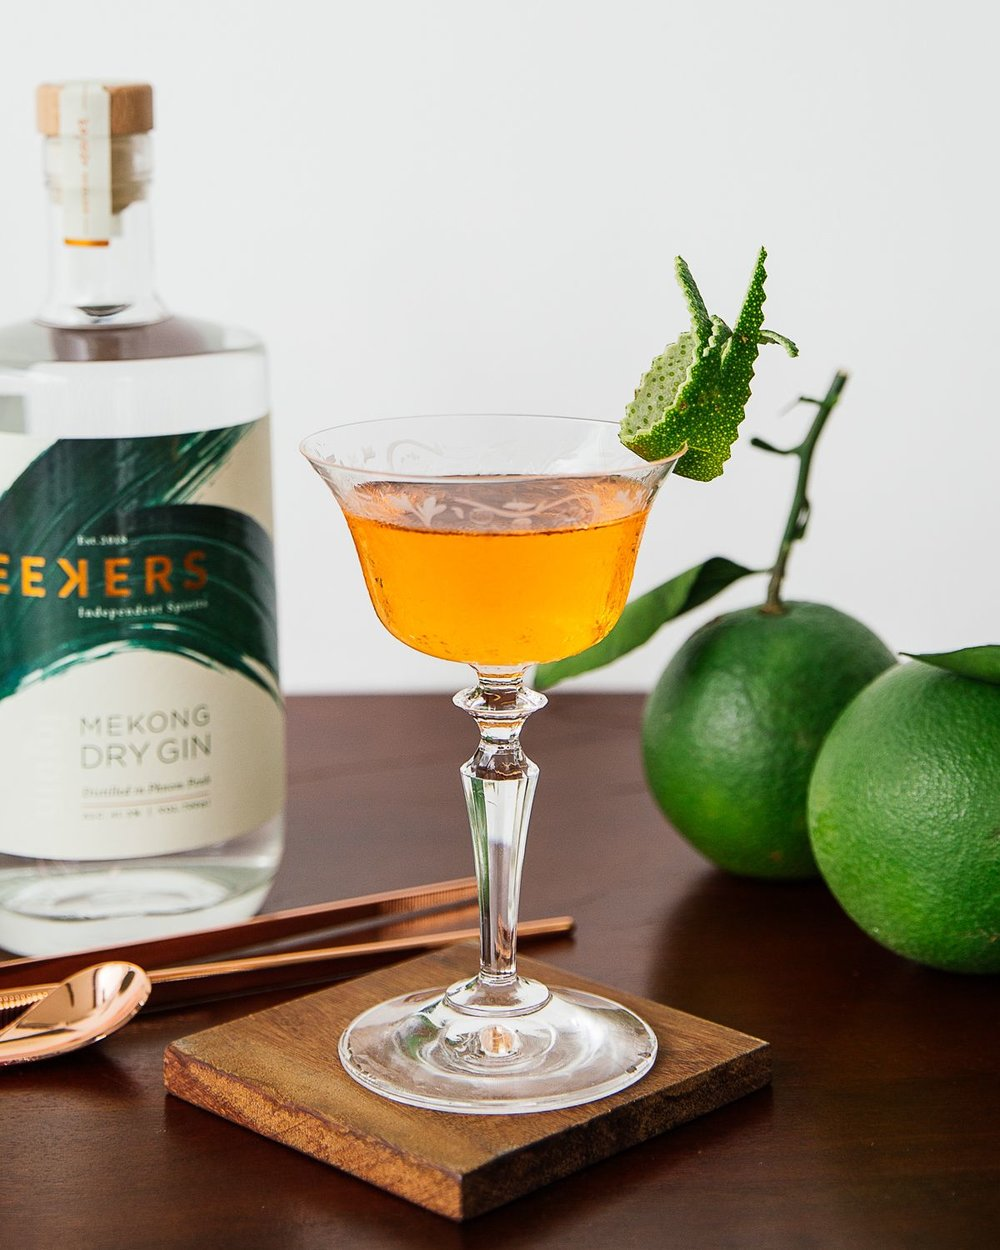 The Magarian - A Beauty, inside and out. Elegant, smooth, medium sweet.30ml Seekers Mekong Dry Gin15ml Aperol15ml Martini Dry VermouthStir all ingredients in a mixing glass with ice. Strain into a coupe glass. Garnish with a green orange twist.